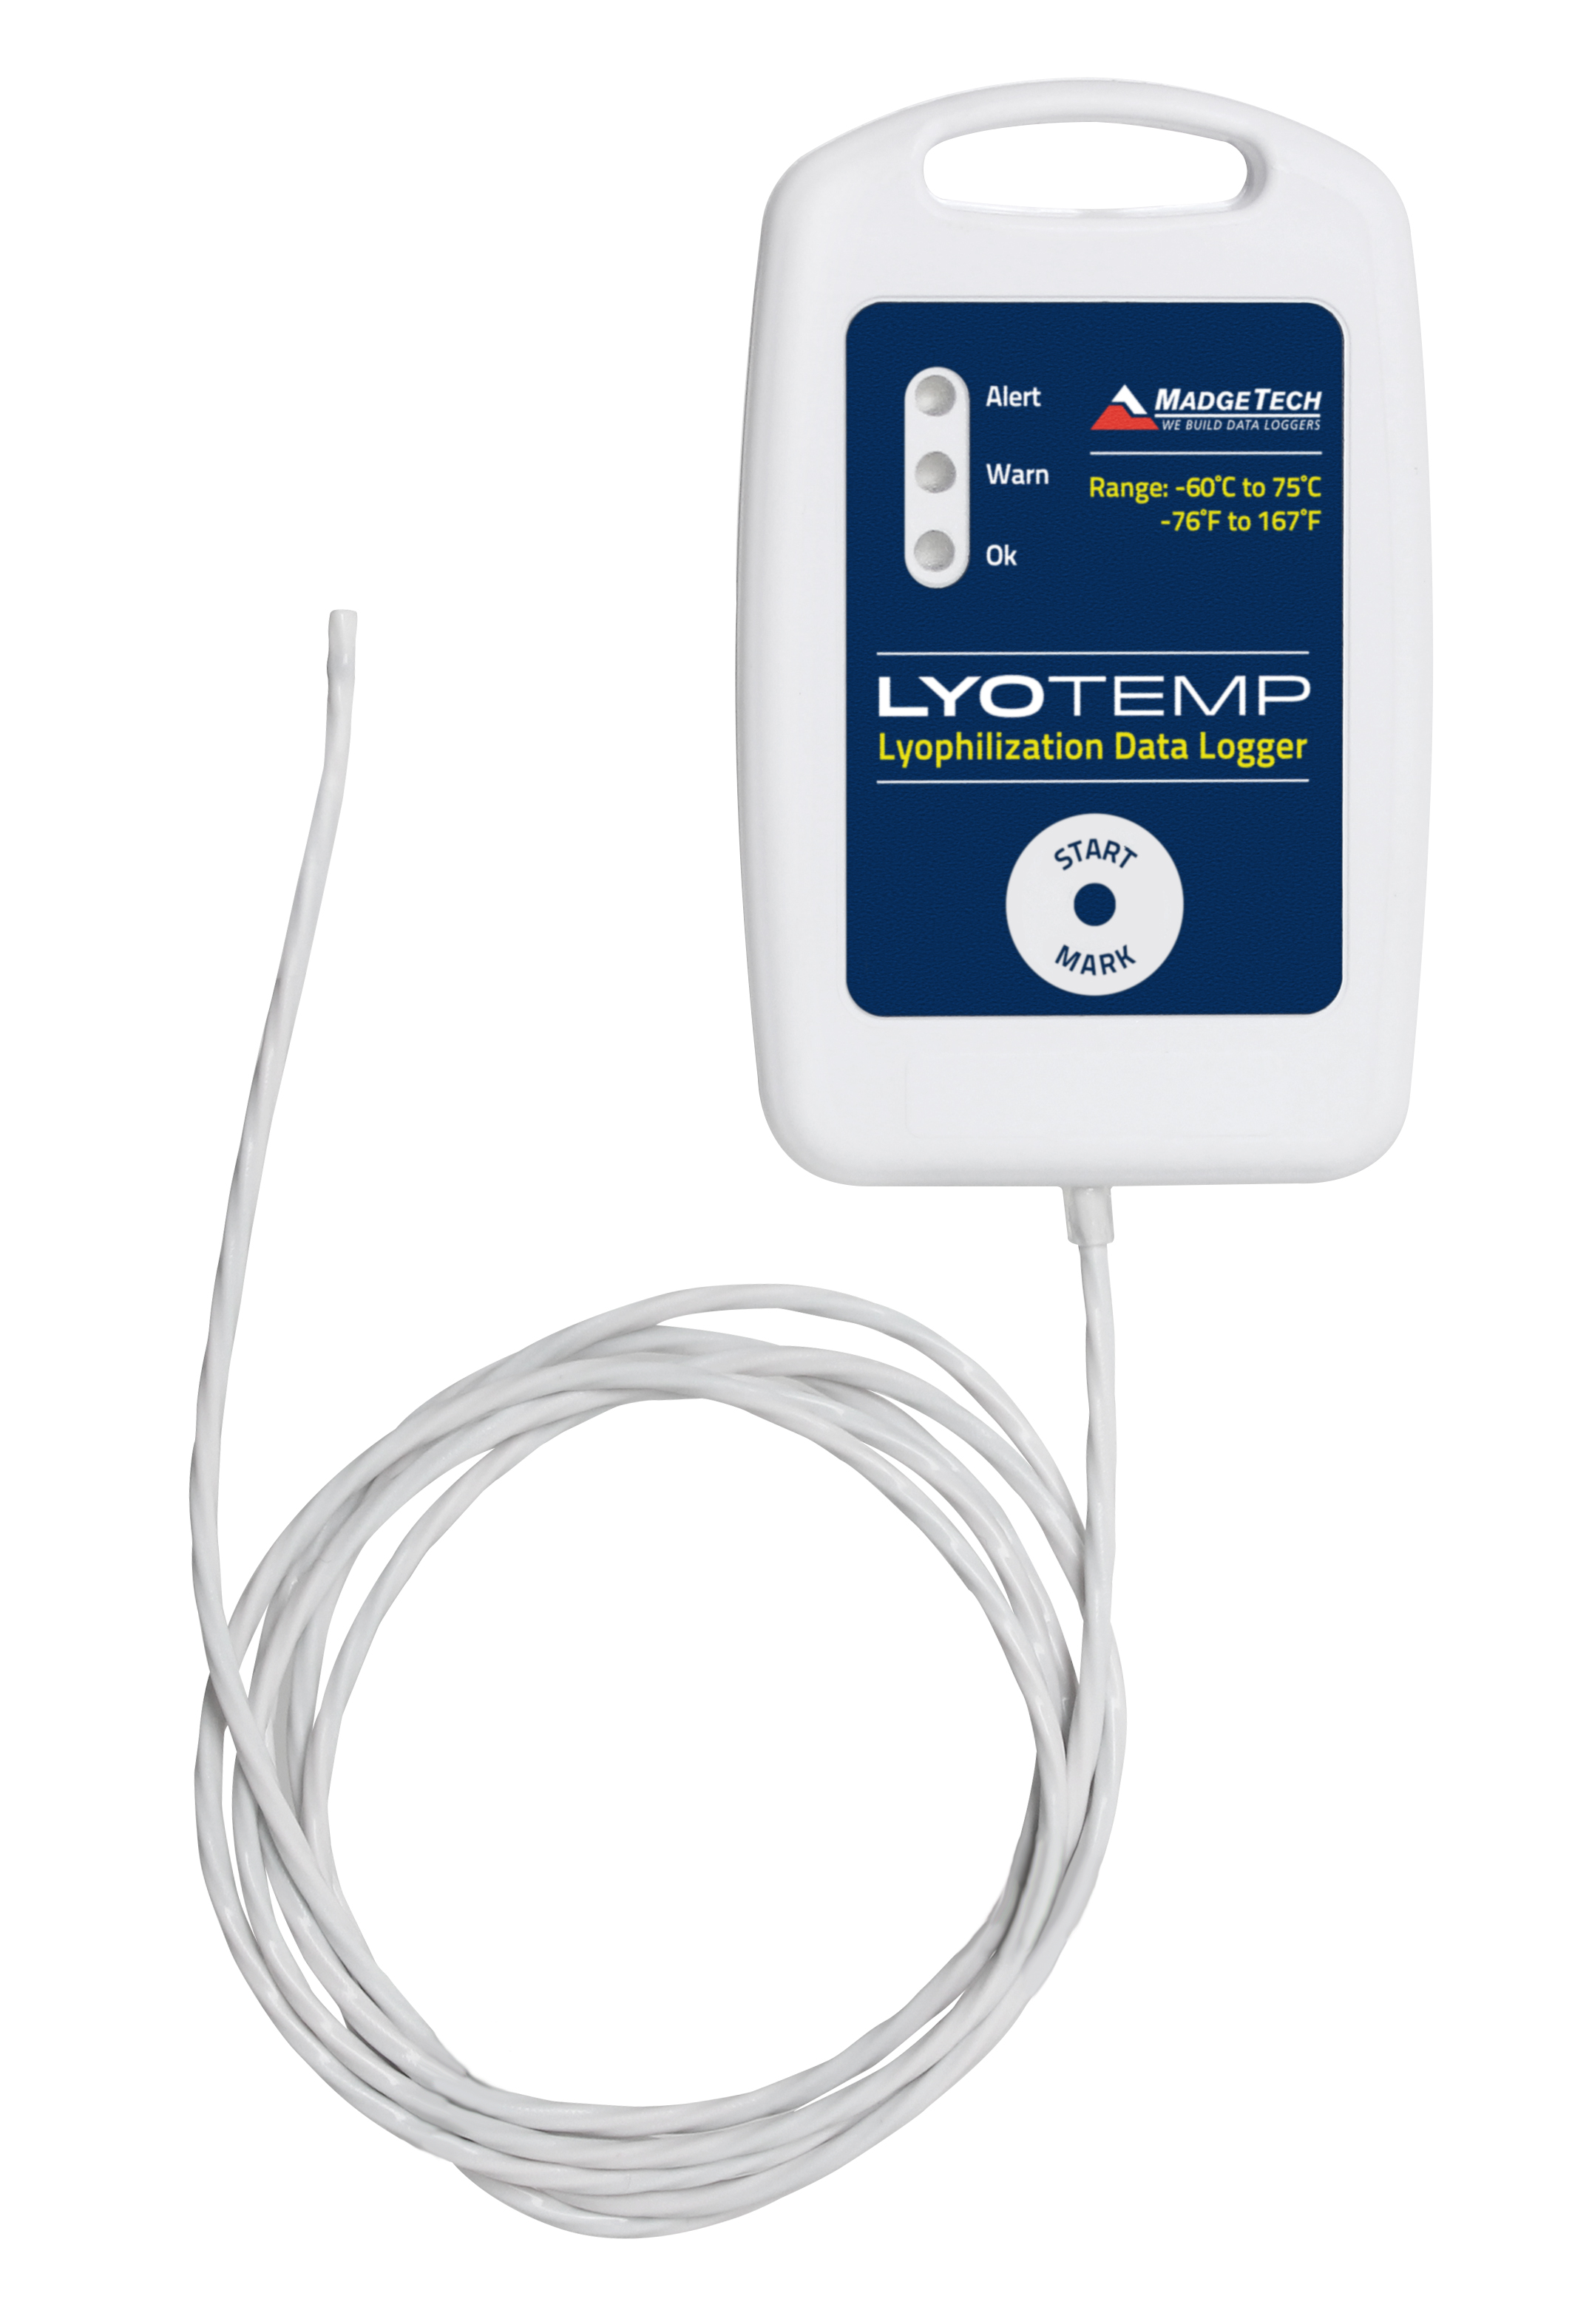 LyoTemp low temperature Lyophilization Data Logger